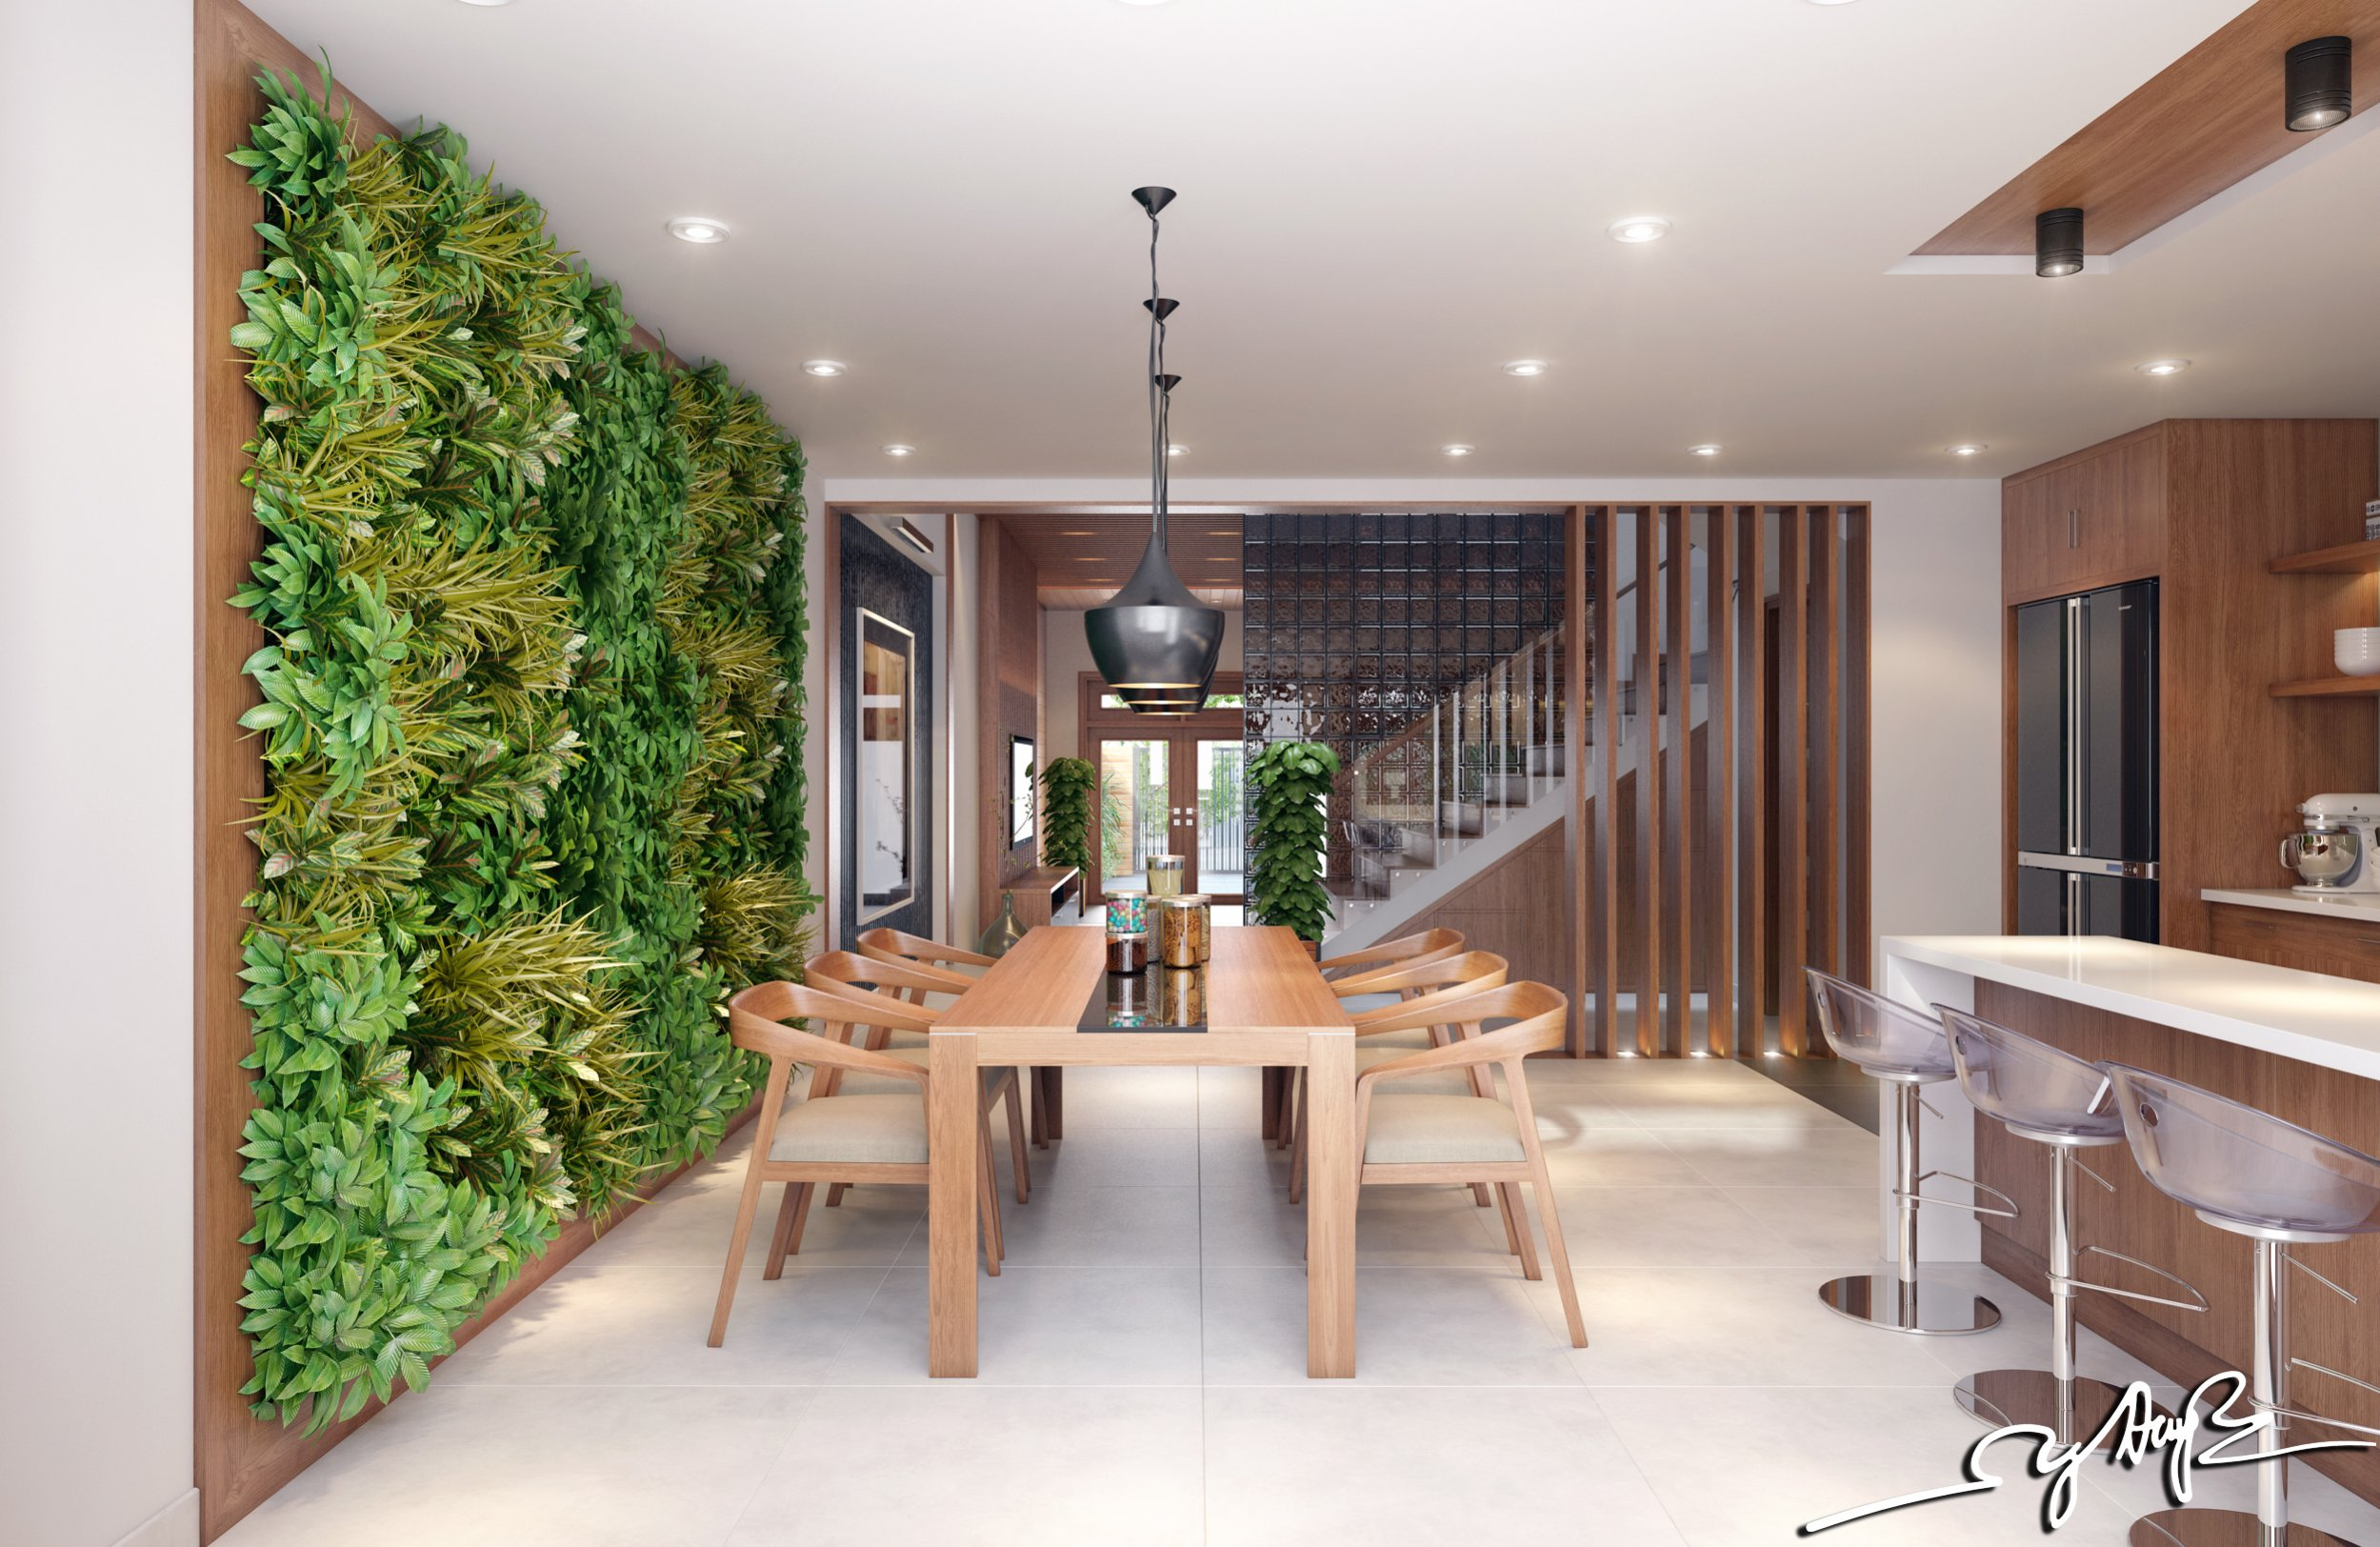 Interior Design Close To Nature: Rich Wood Themes And Indoor